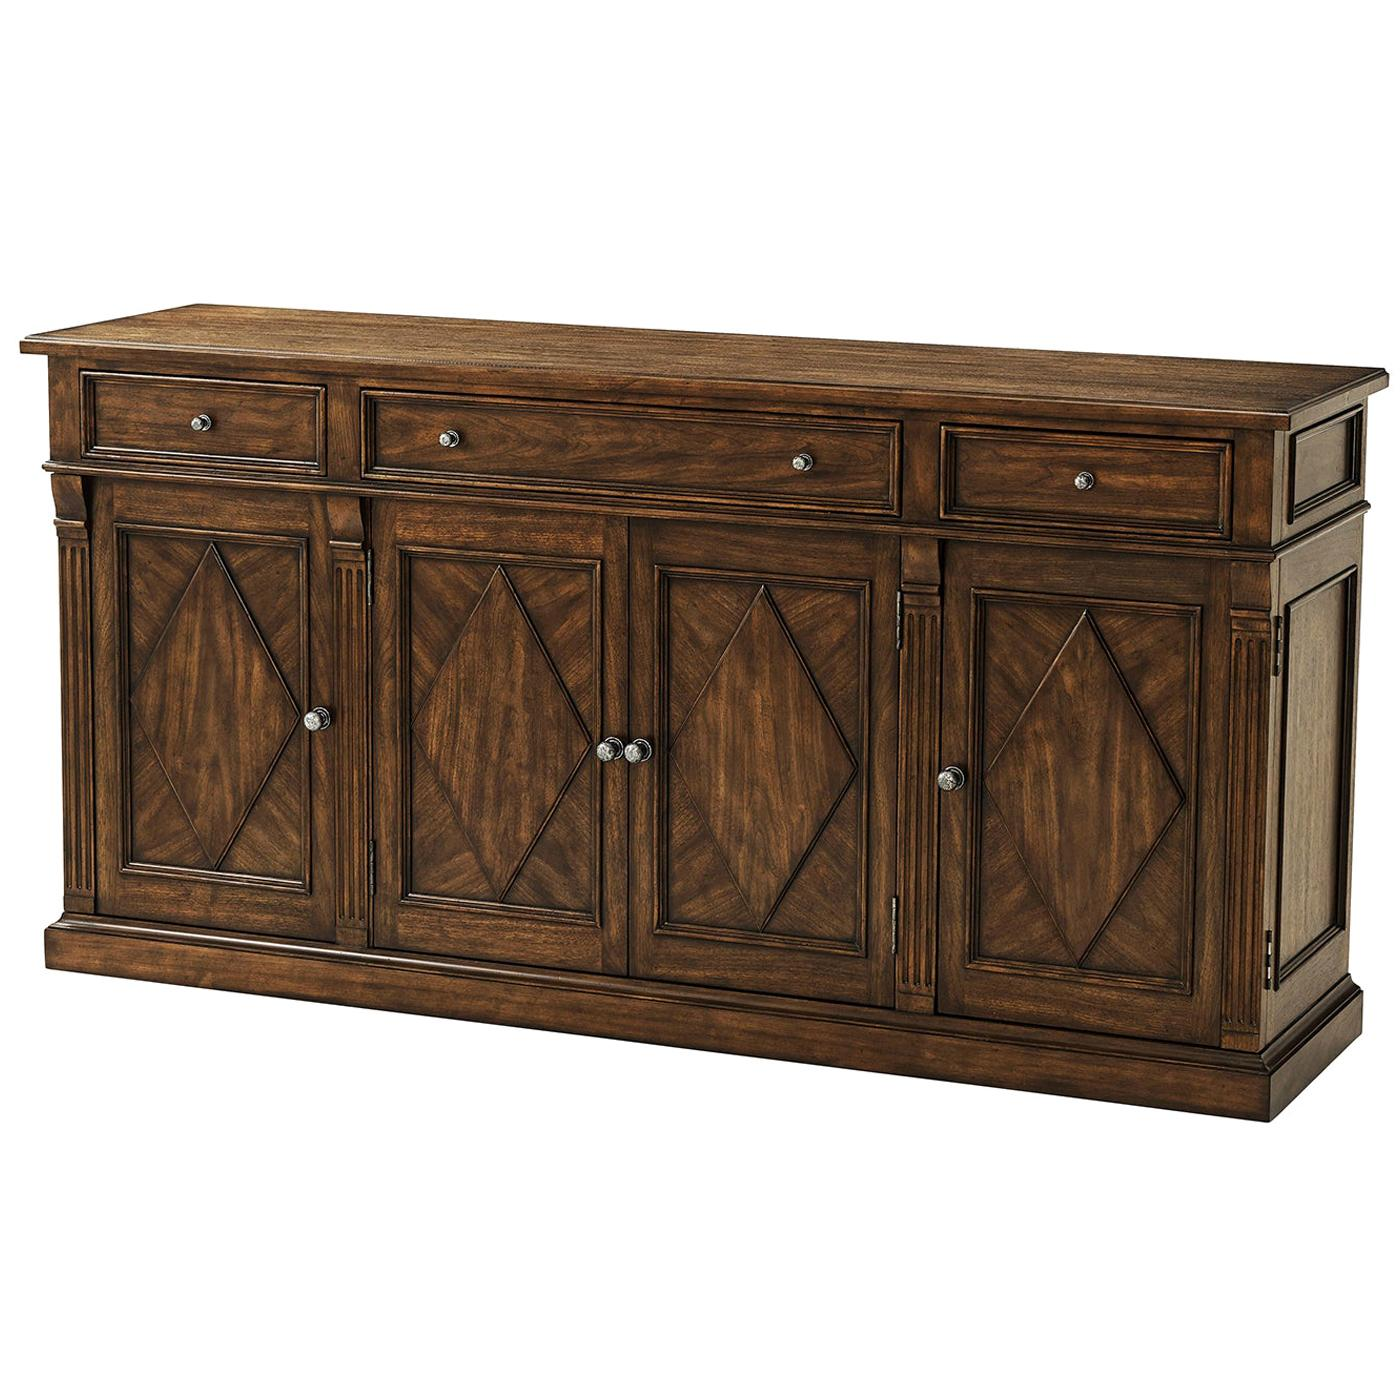 French Provincial Directoire Buffet